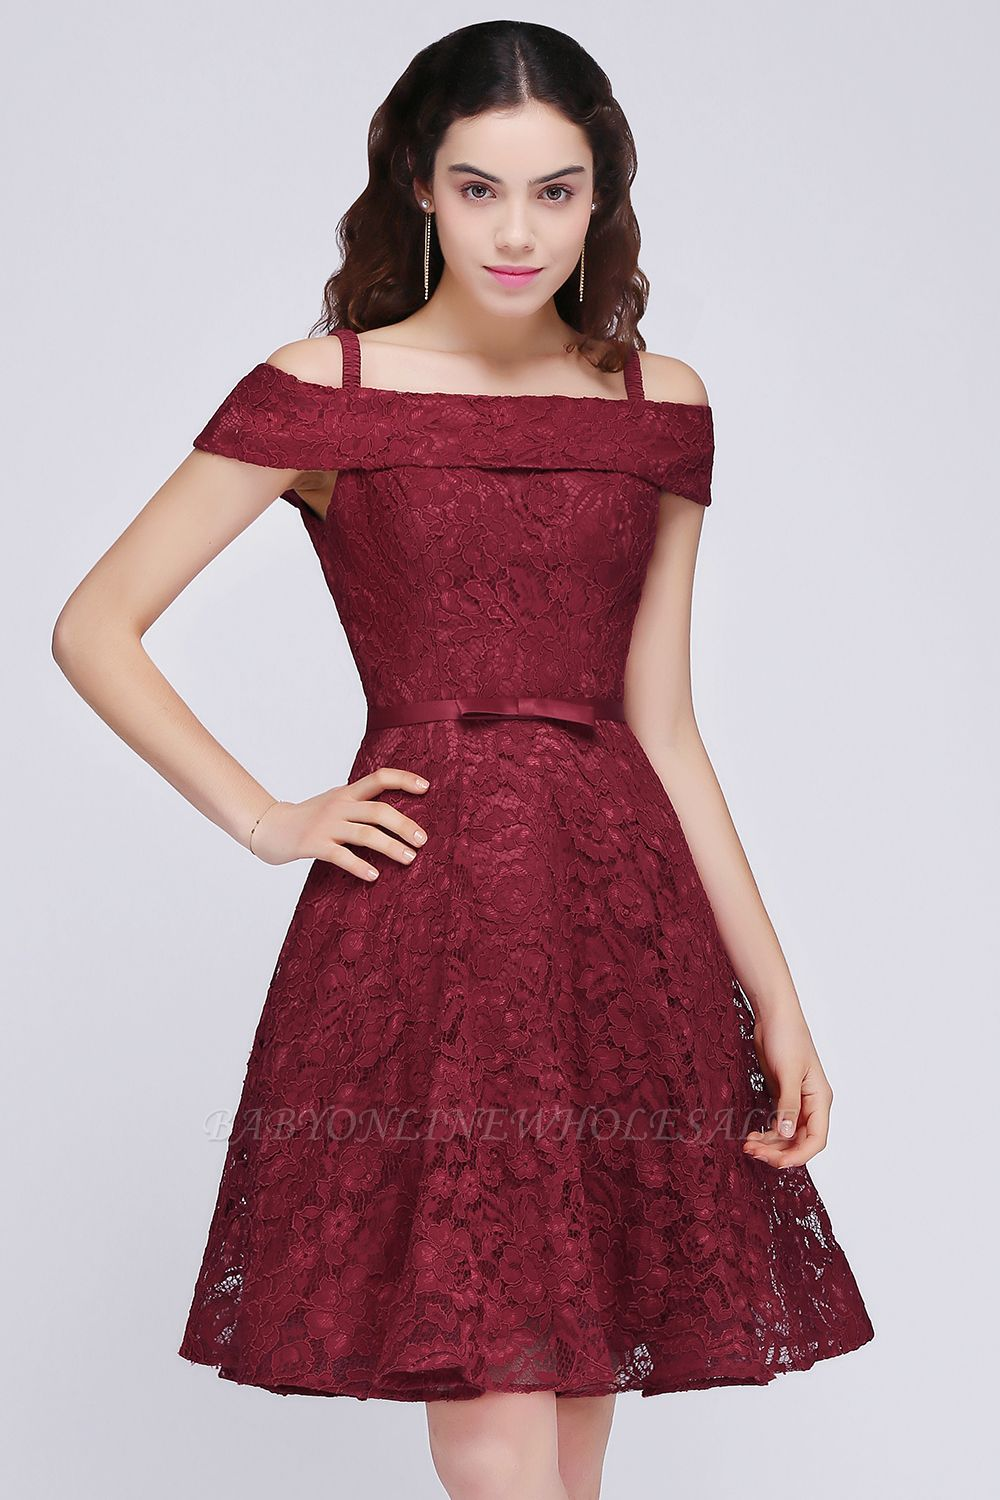 BRISTOL | A-Line Spaghetti Straps Short Lace Burgundy Homecoming Dresses